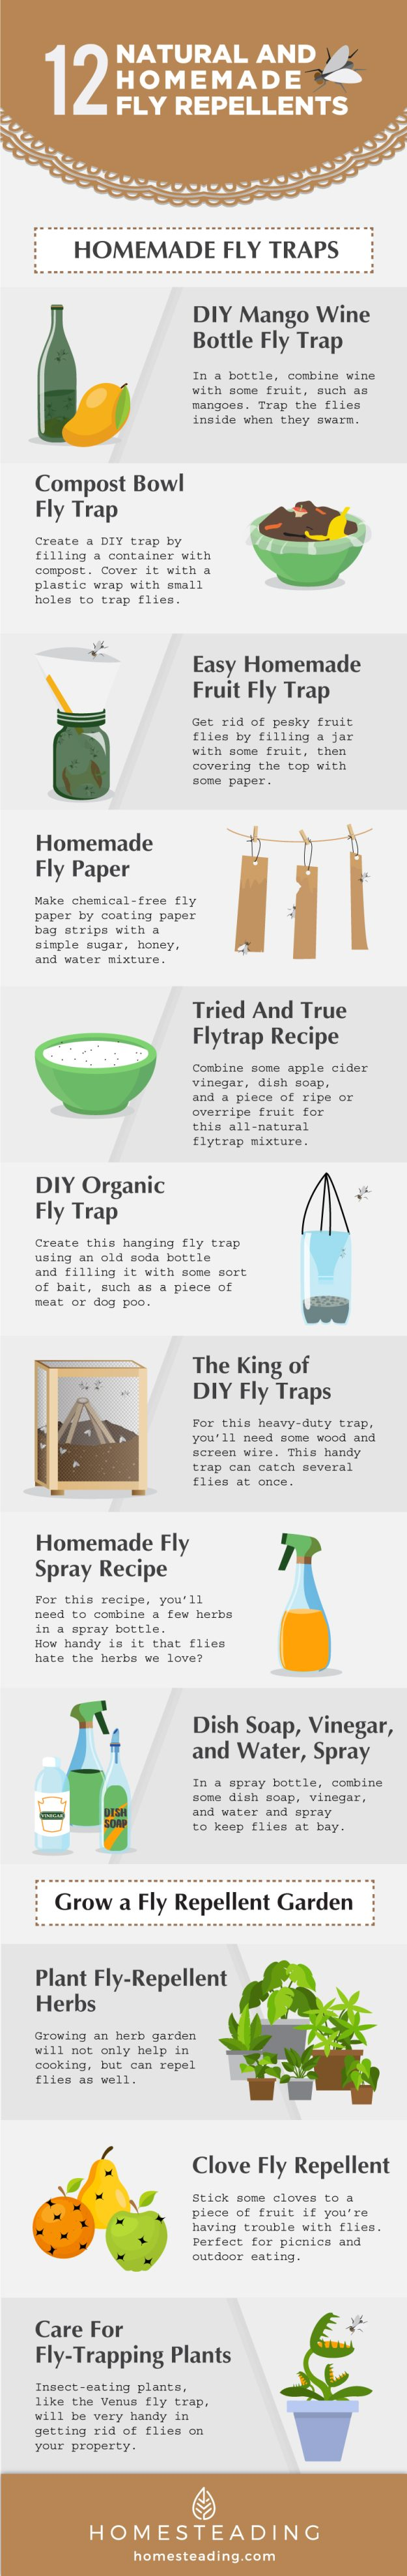 How To Get Rid Of Flies | Natural And Homemade Fly Repellents